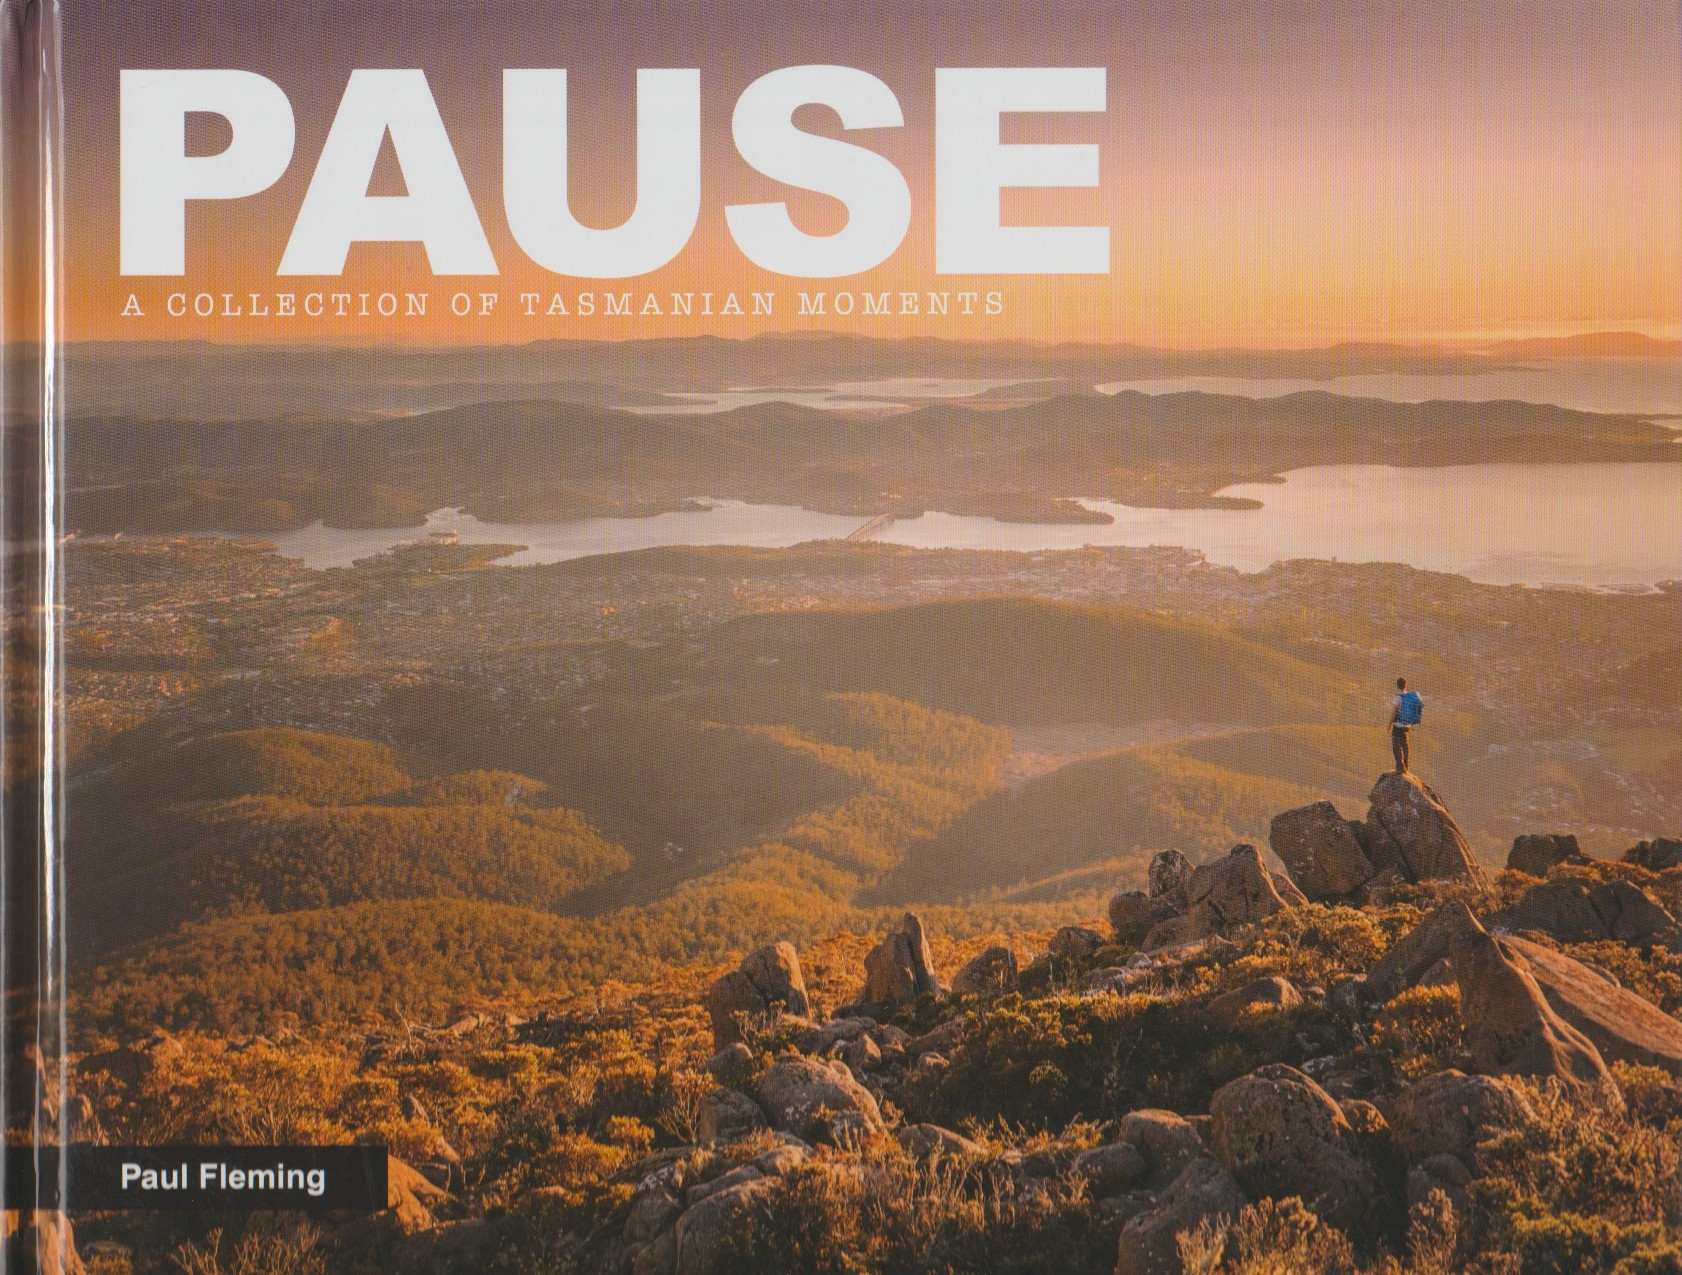 Pause - A Collection of Tasmanian Moments